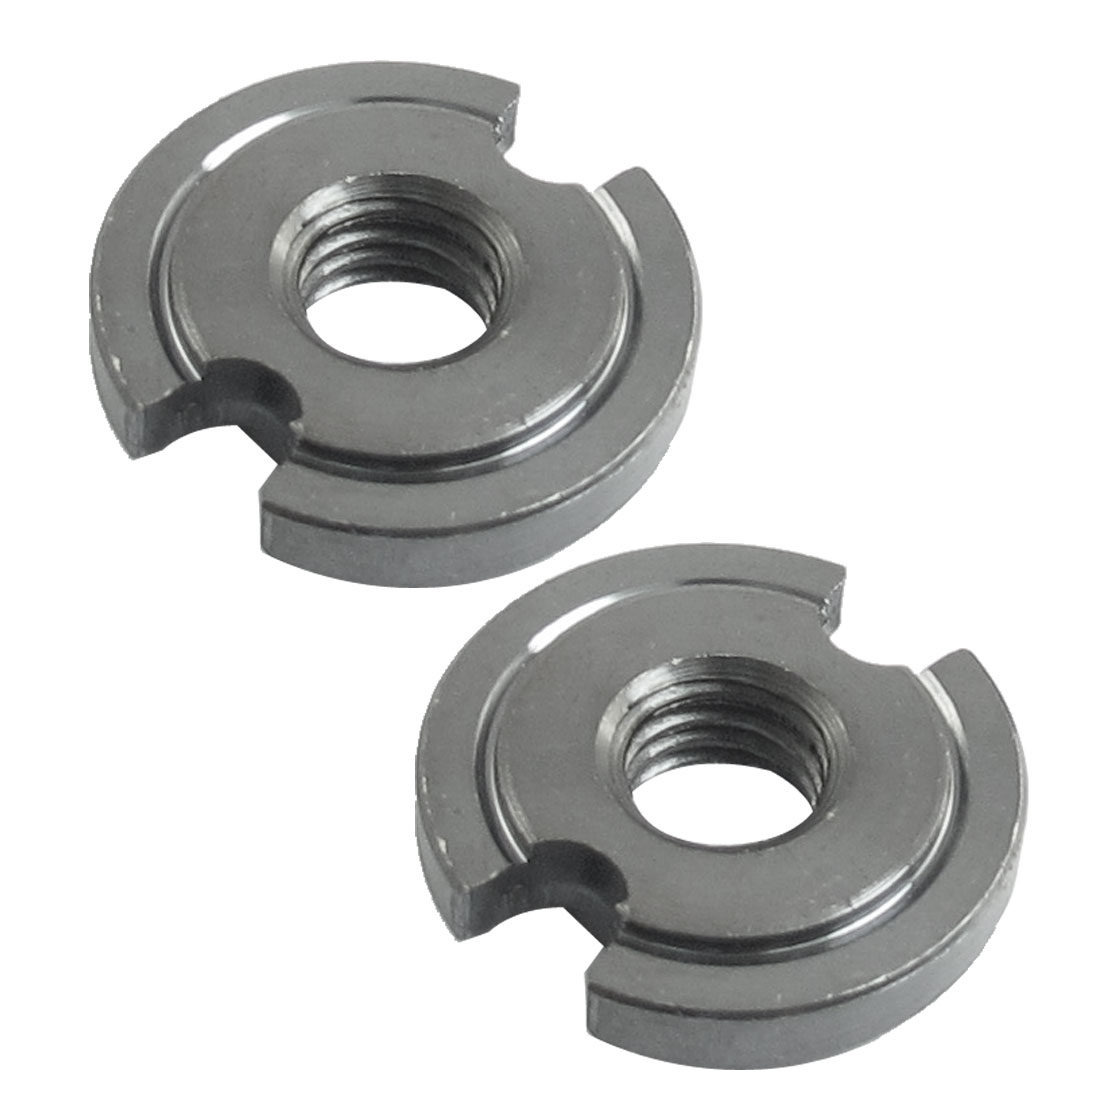 2 Pcs Replacement Angle Grinder Part Inner Outer Flange for Dewalt 100 DW803